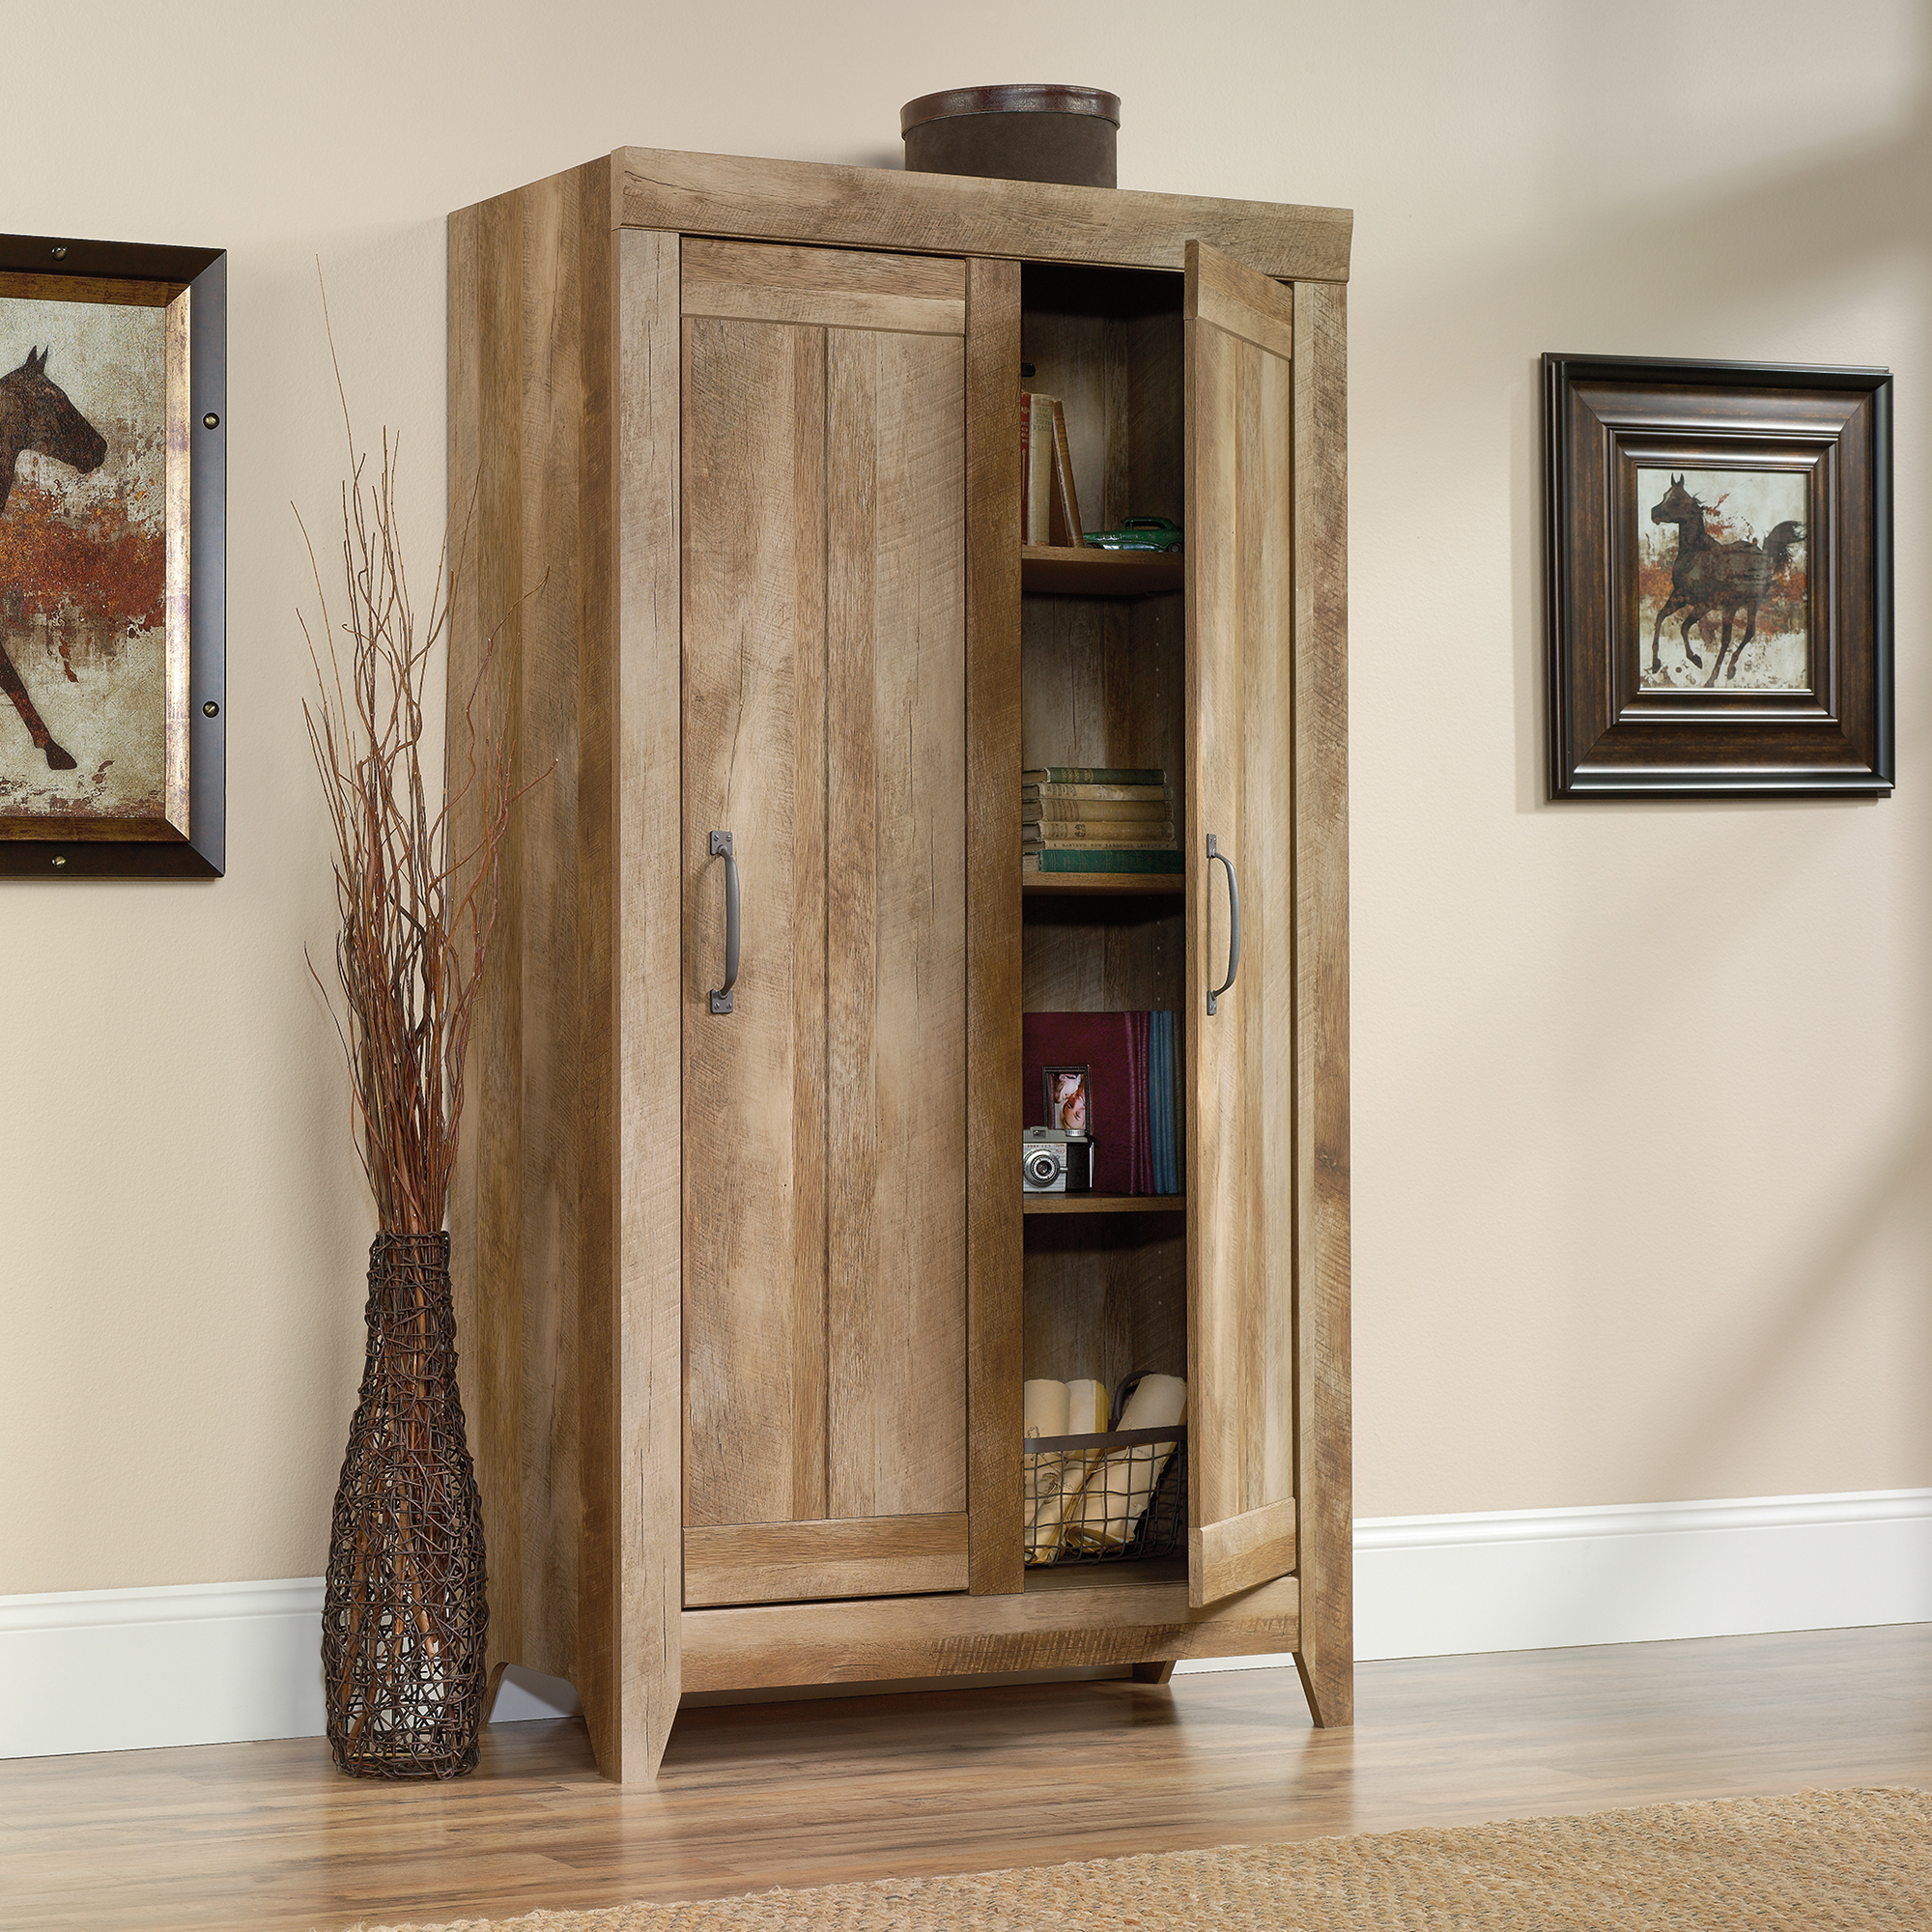 Oak Storage Cabinet by sauder furniture on wooden floor which matched with beige wall for living room decor ideas